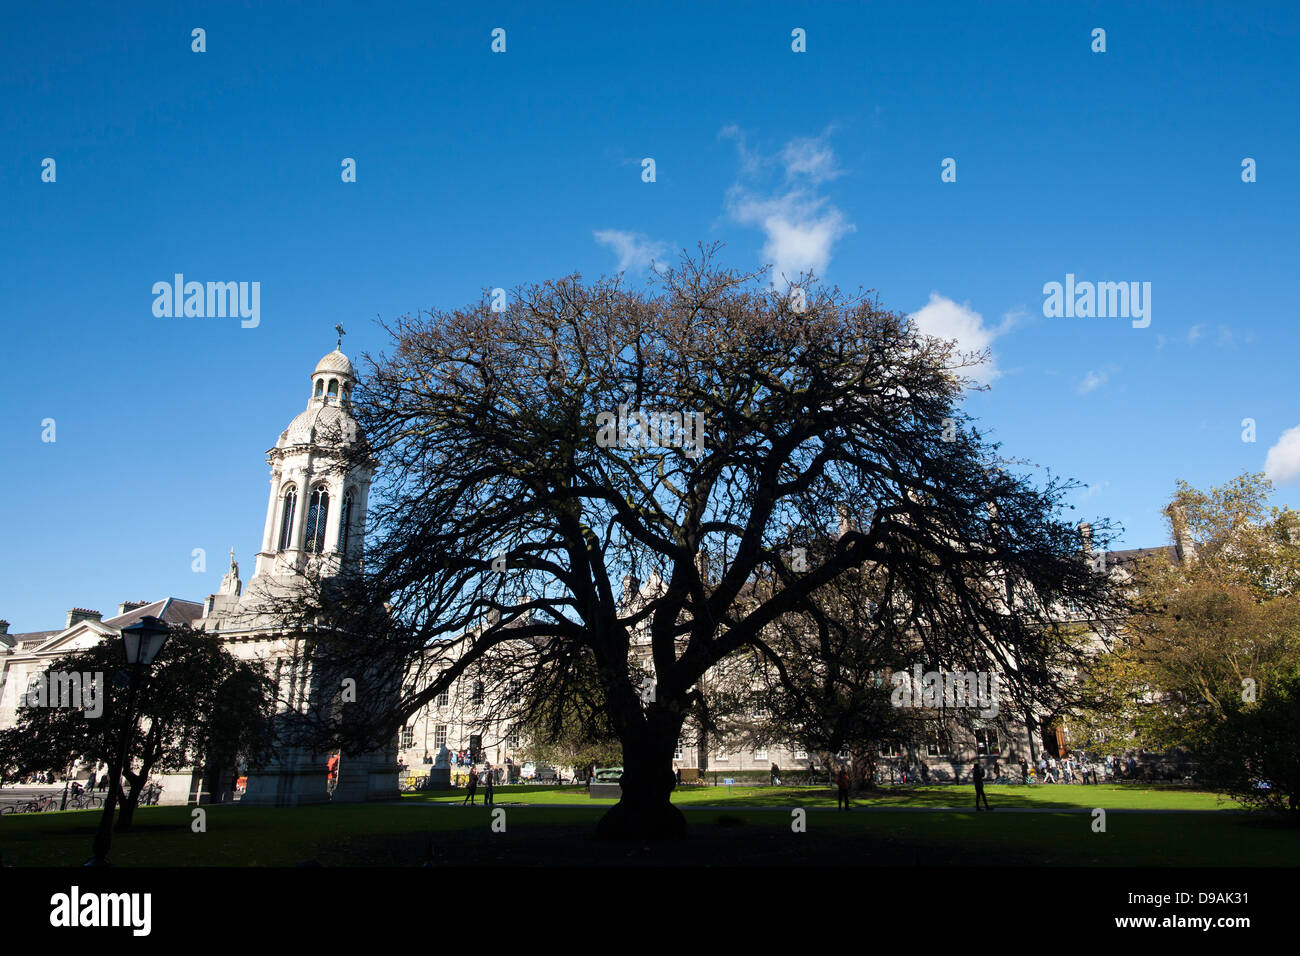 A graceful tree silhouettes the building inside the grounds of Trinity College Dublin in the Republic Of Ireland - Stock Image